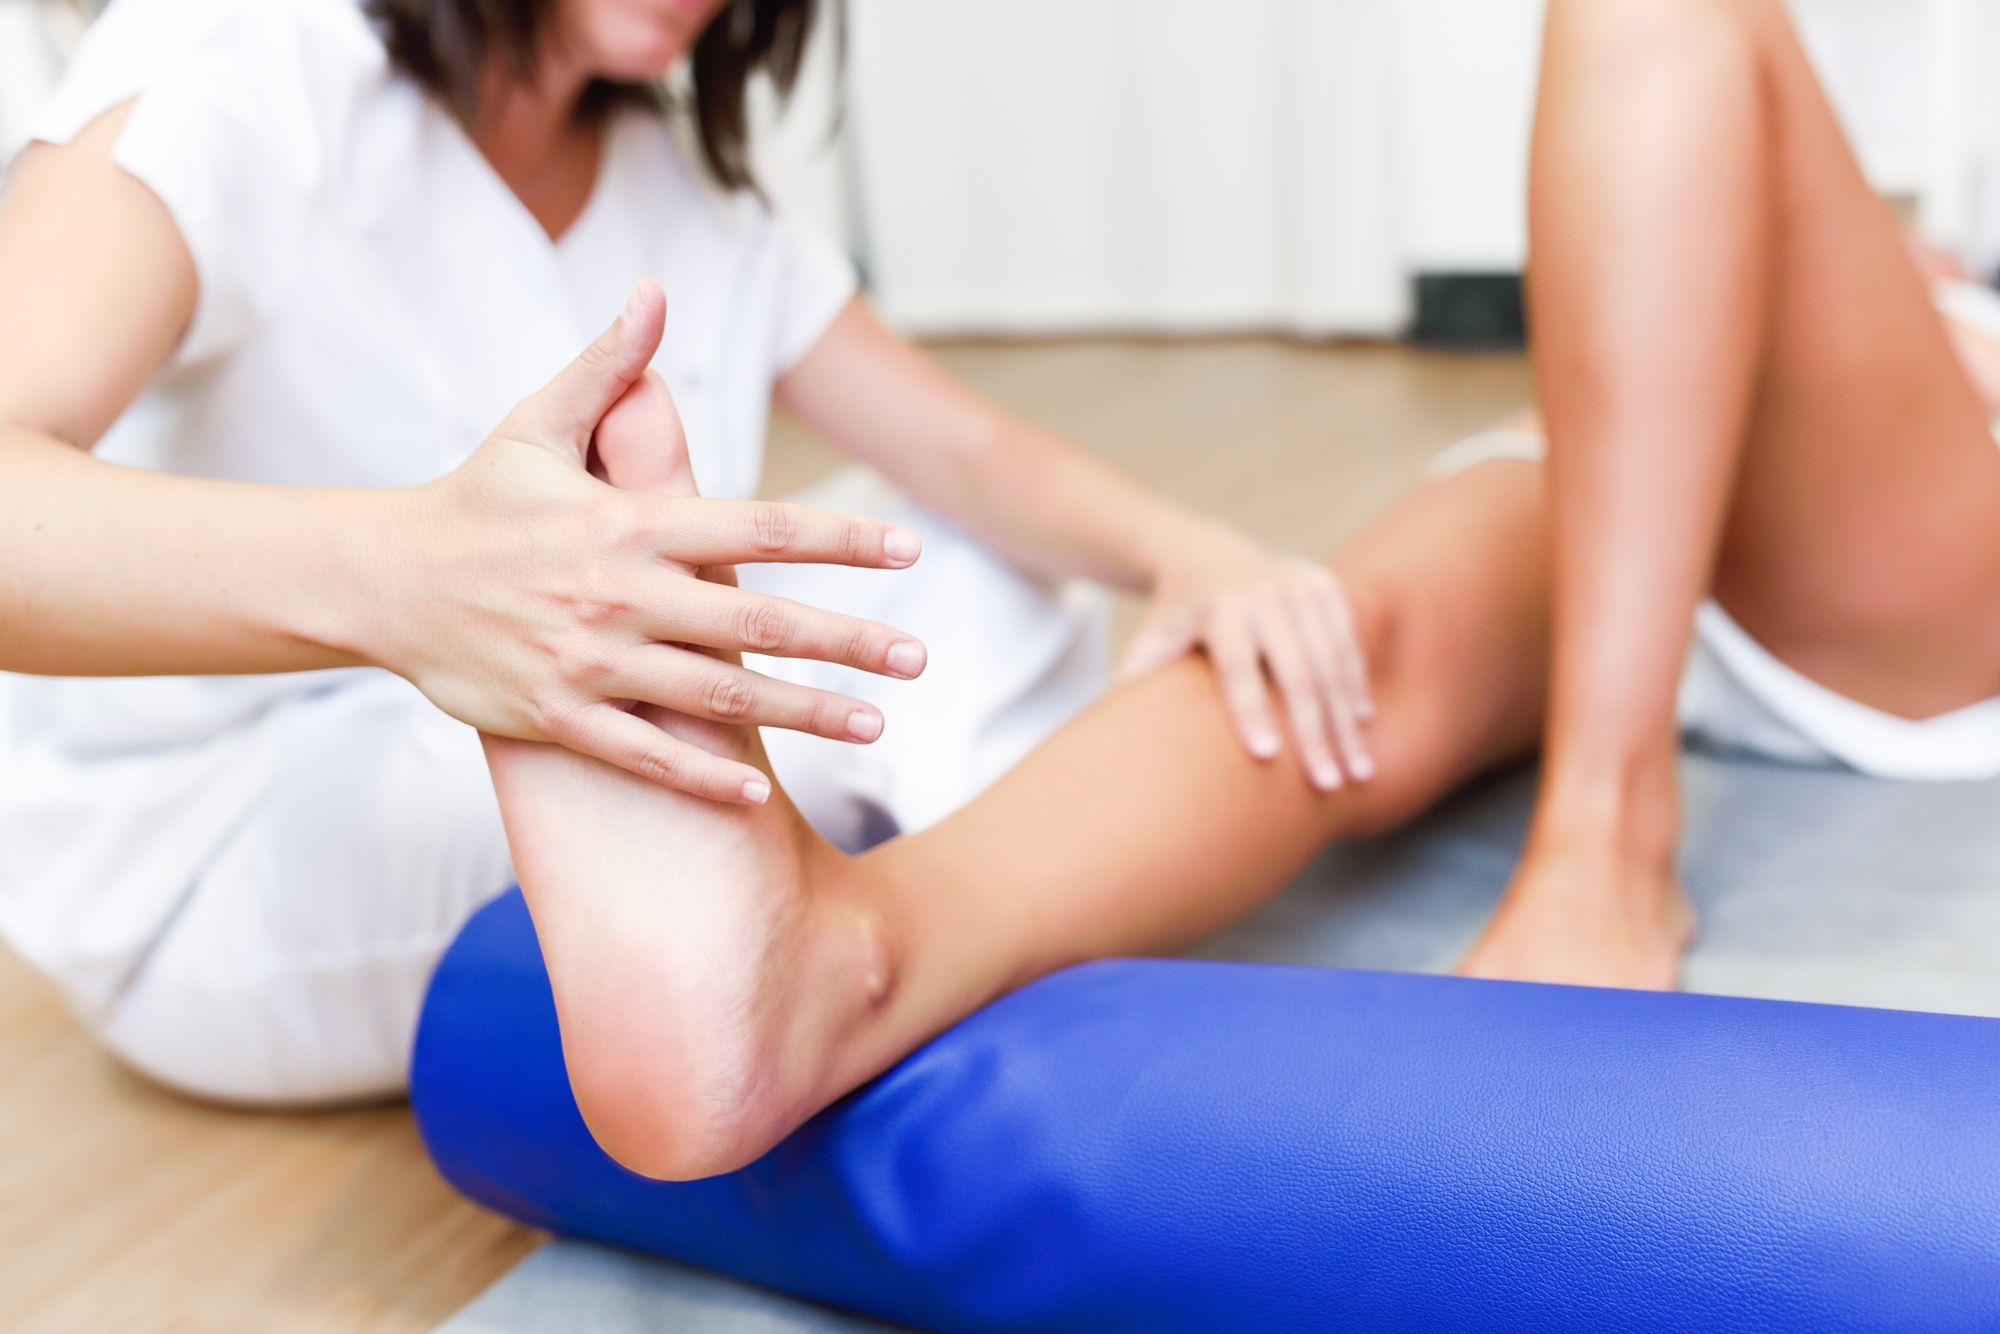 Is Physiotherapy the Same as Physical Therapy?